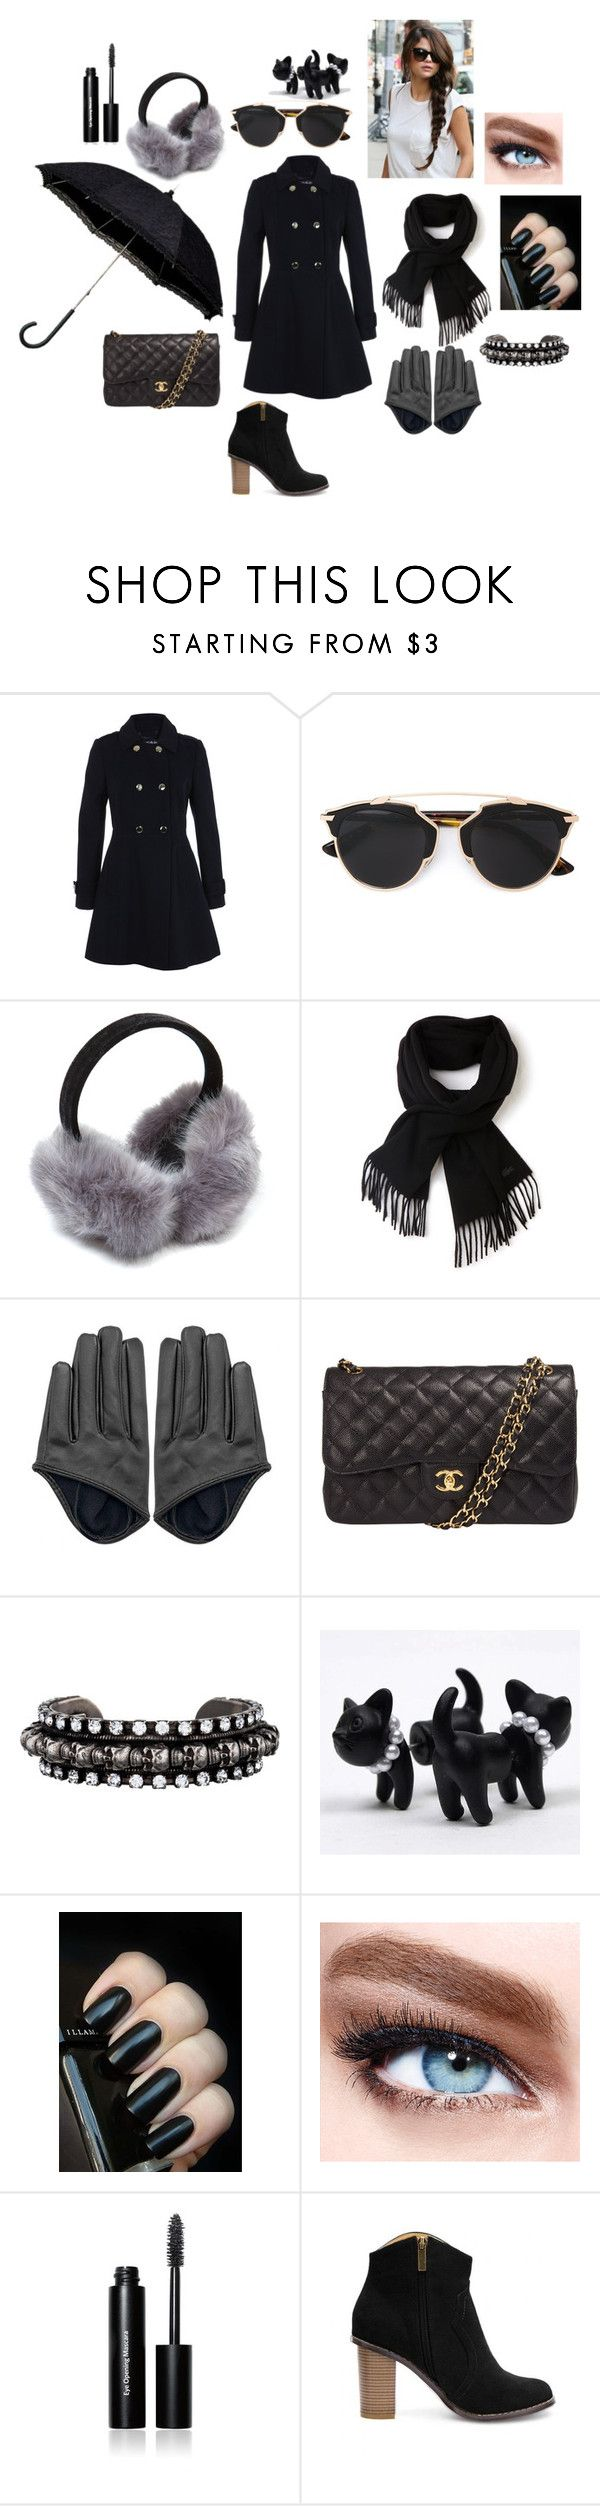 """""""Sem título #600"""" by percabeth-chrisse-thalico on Polyvore featuring moda, Miss Selfridge, Christian Dior, Lacoste, Chanel, DANNIJO, Maybelline, Bobbi Brown Cosmetics, women's clothing e women's fashion"""